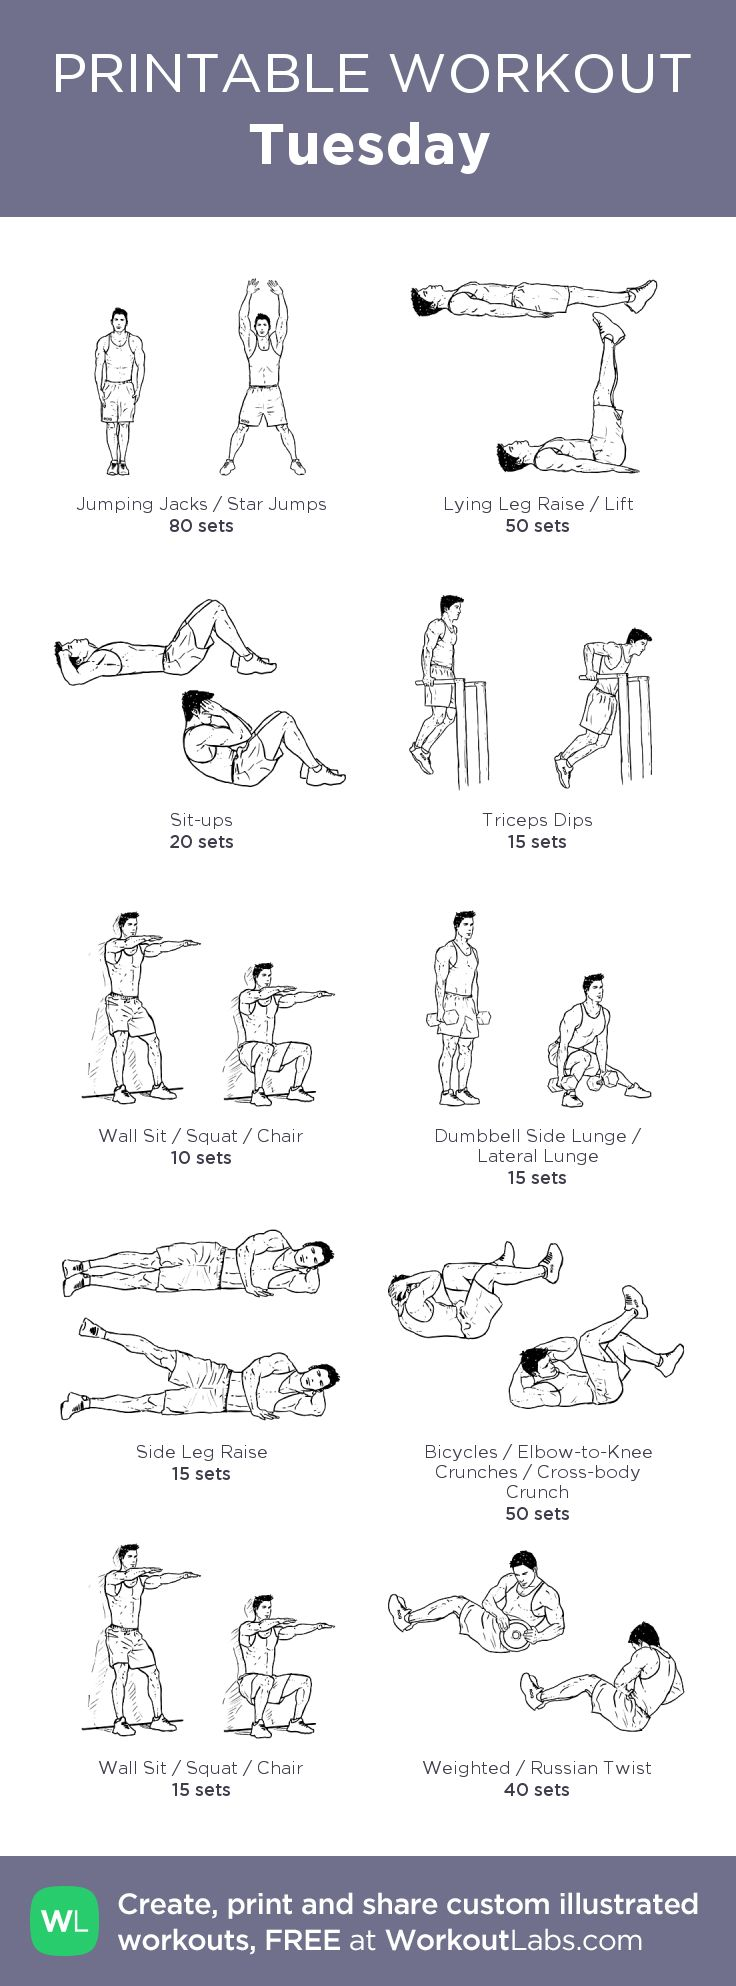 Tuesday:my visual workout created at WorkoutLabs.com • Click through to customize and download as a FREE PDF! #customworkout